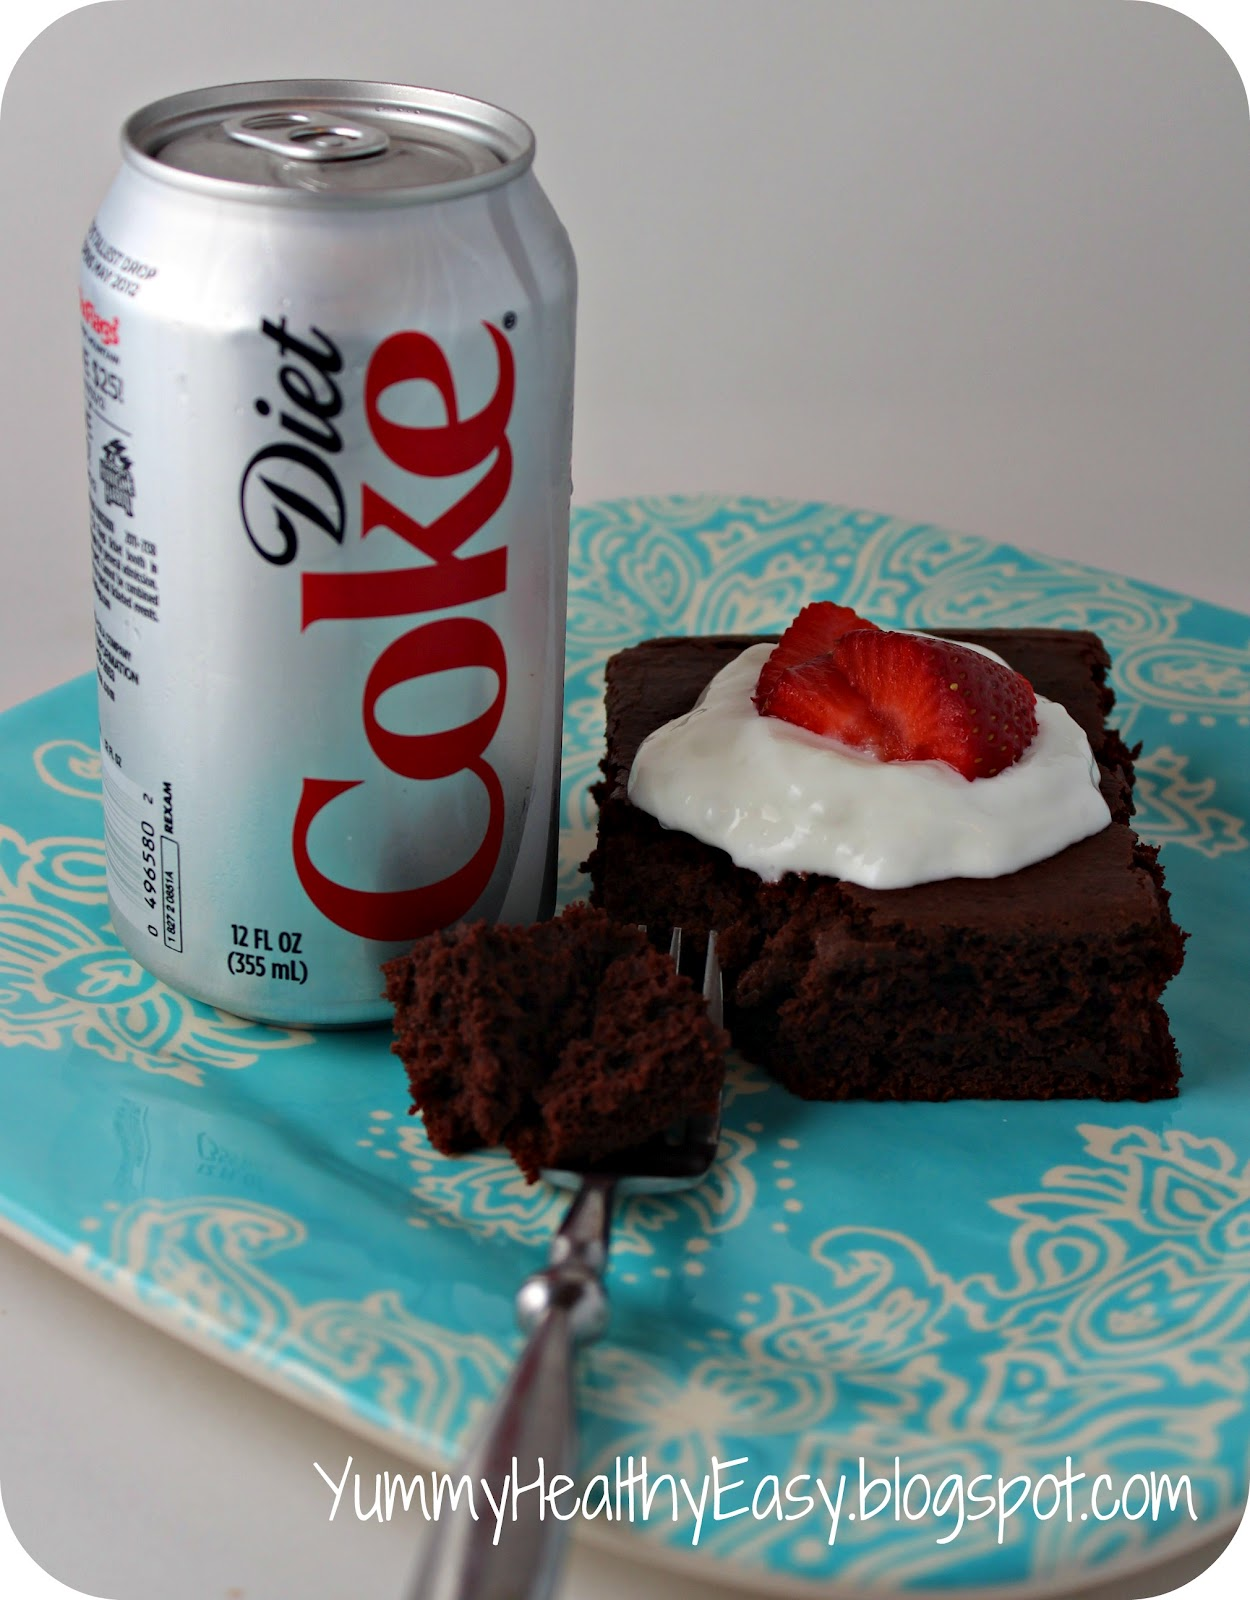 ... thought that a diet soda cake mix a decadent yet low fat cake consider